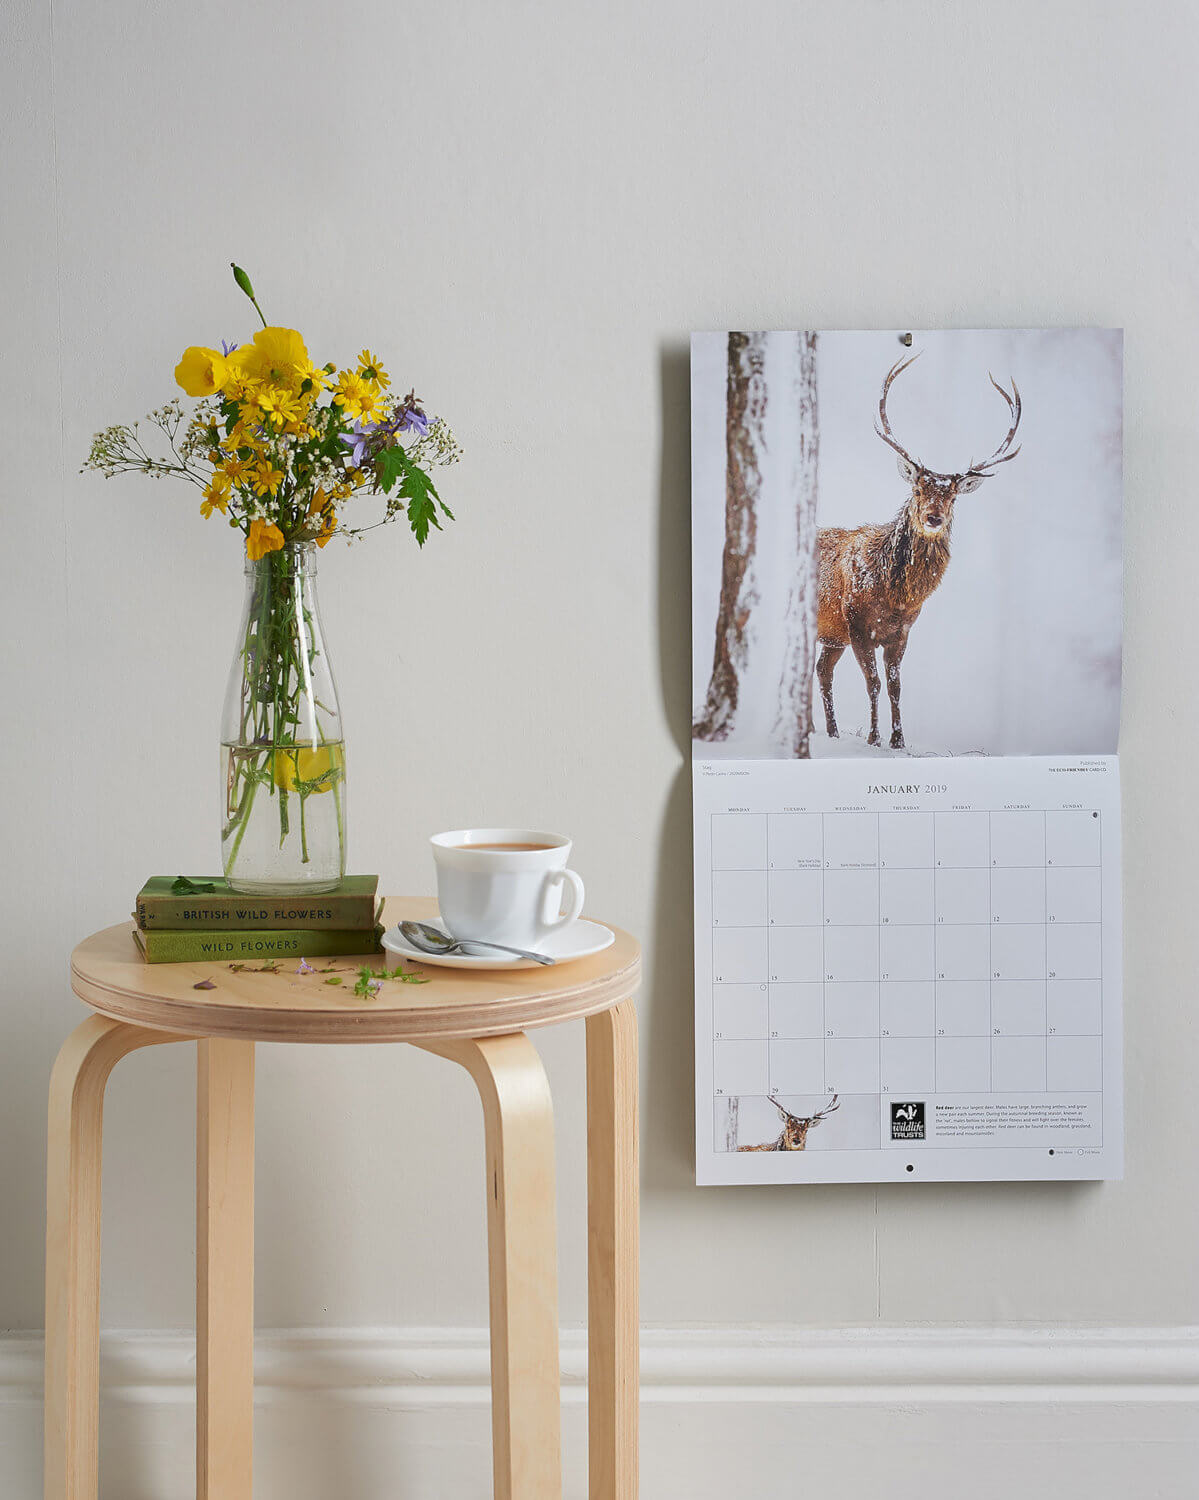 Yorkshire Wildlife Trust calendar shot in a simple setting with wildflowers and observer books as props